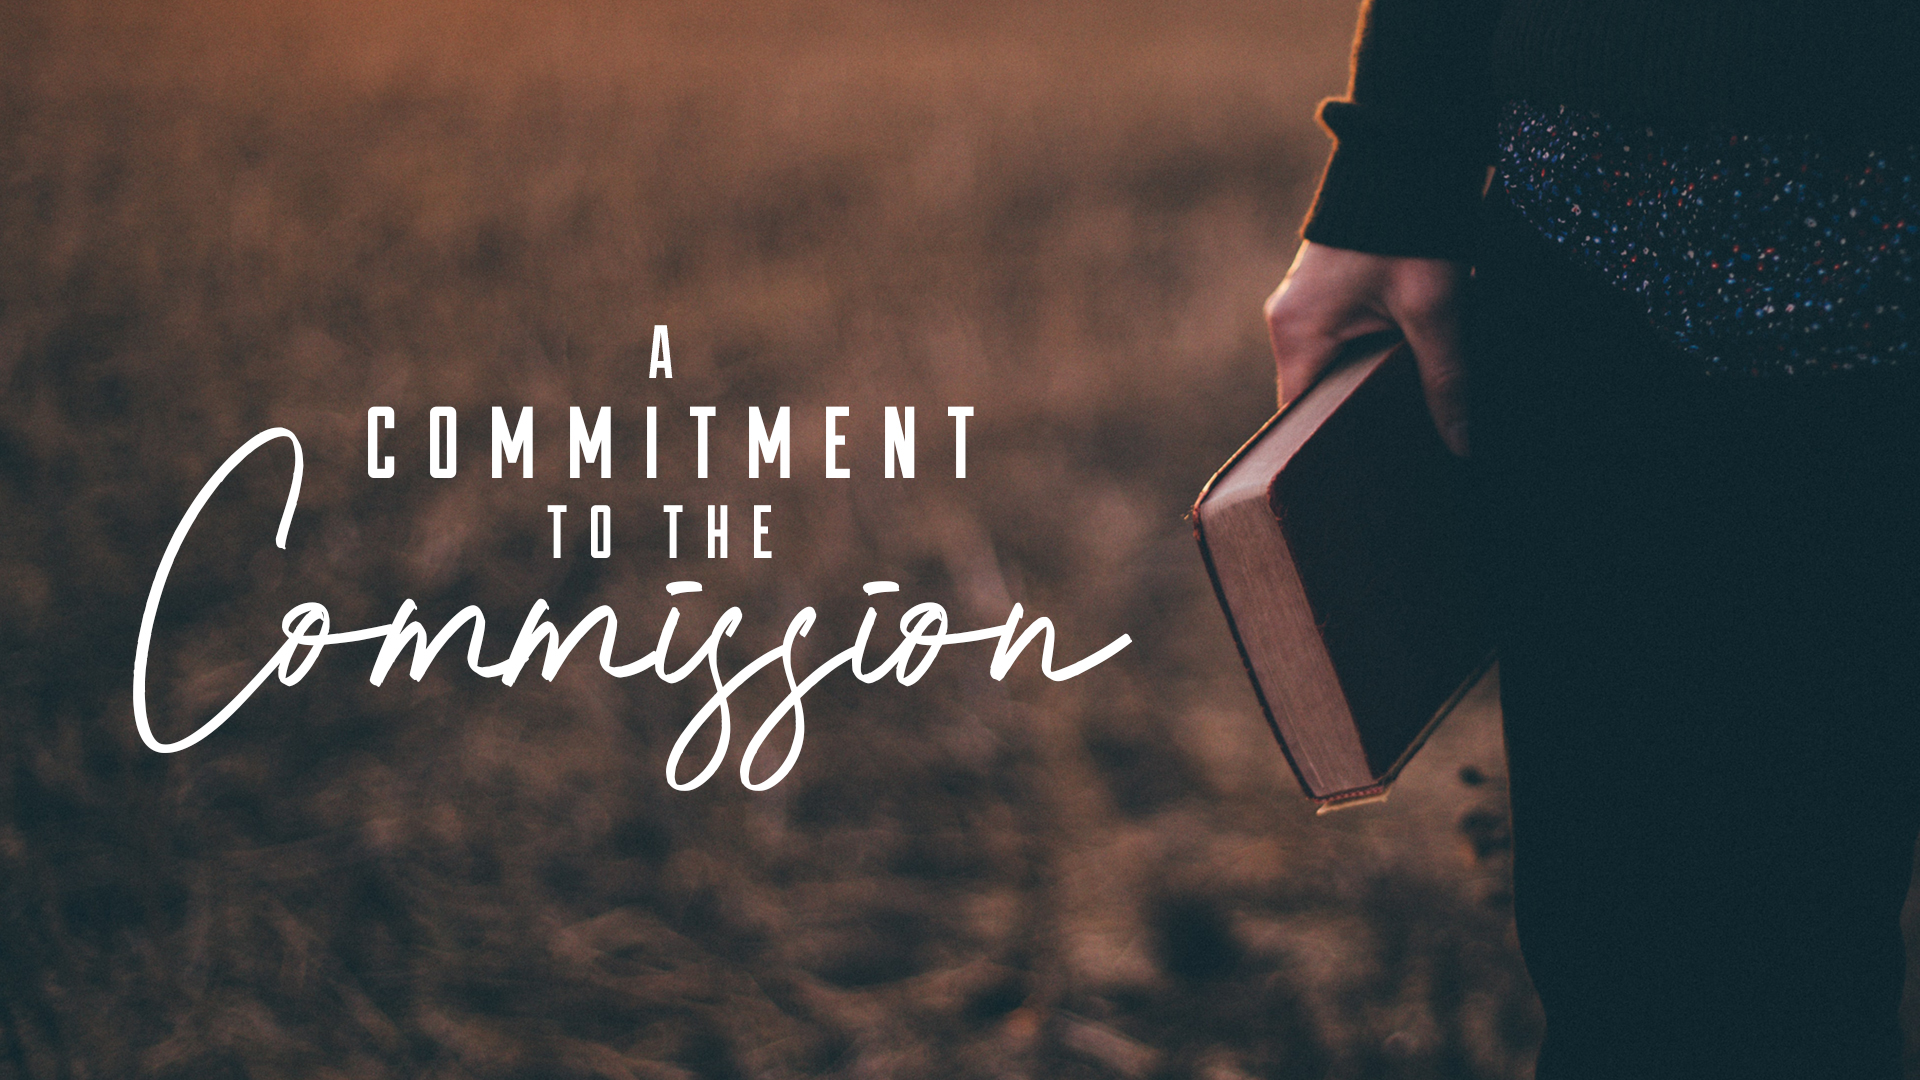 A Commitment to the Commission